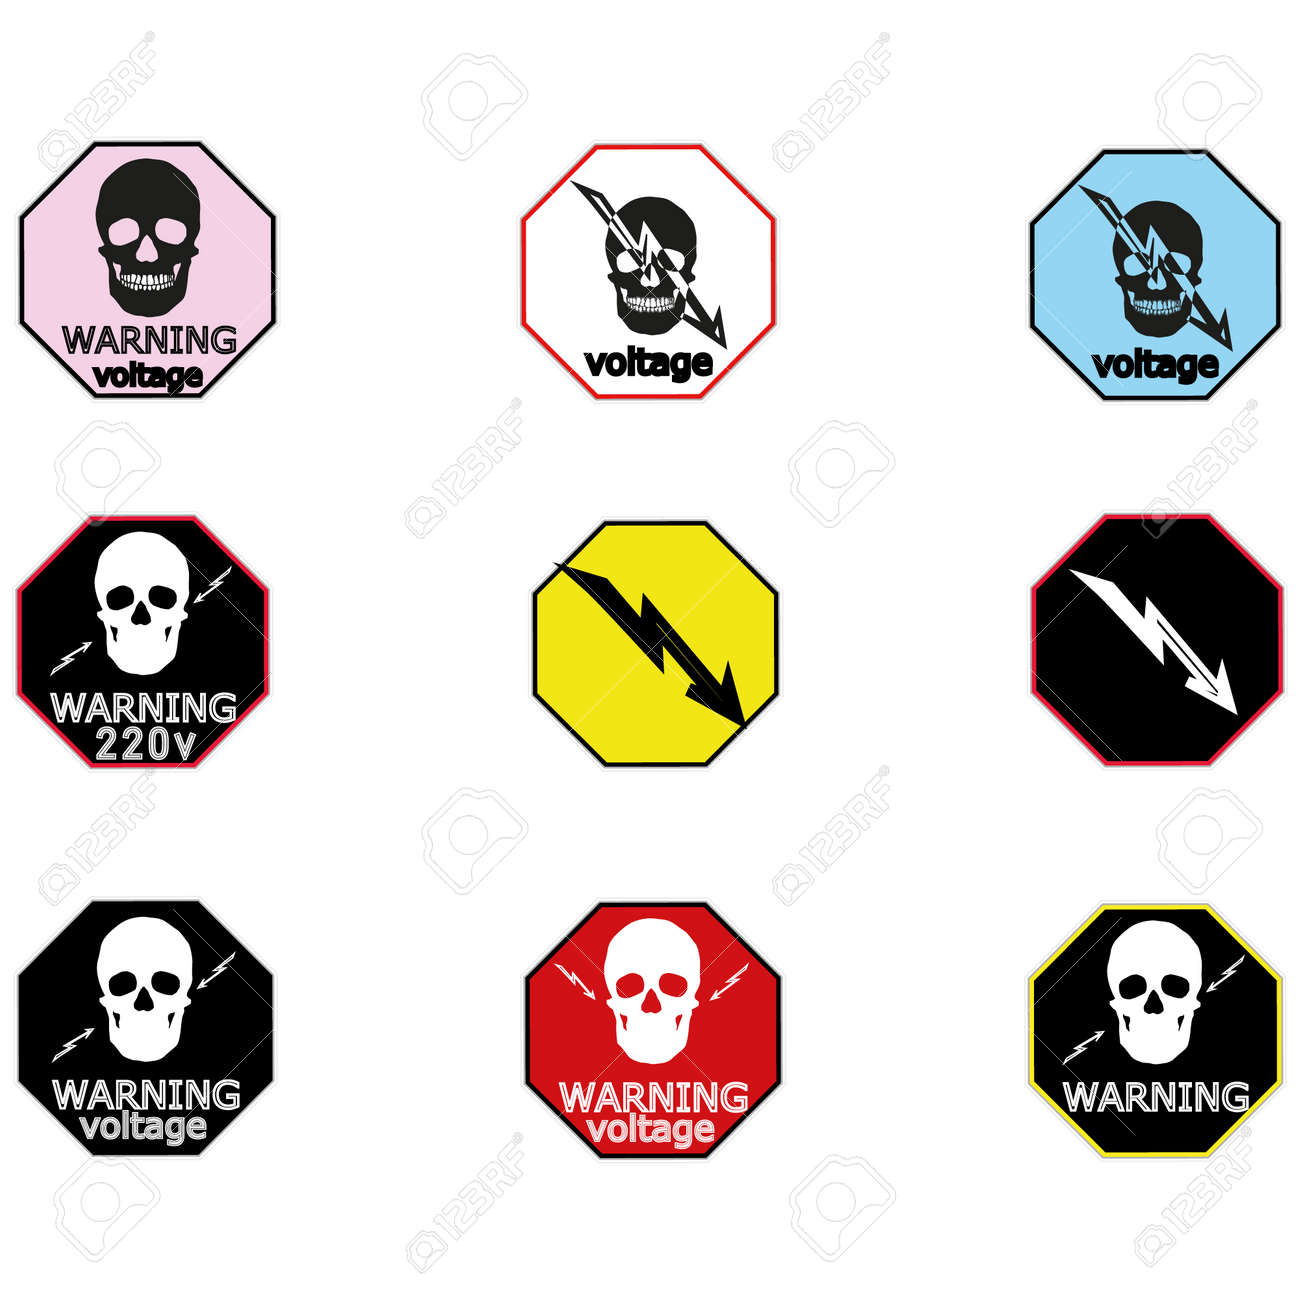 Stickers For Electrical Distribution Board Consumer Electrical